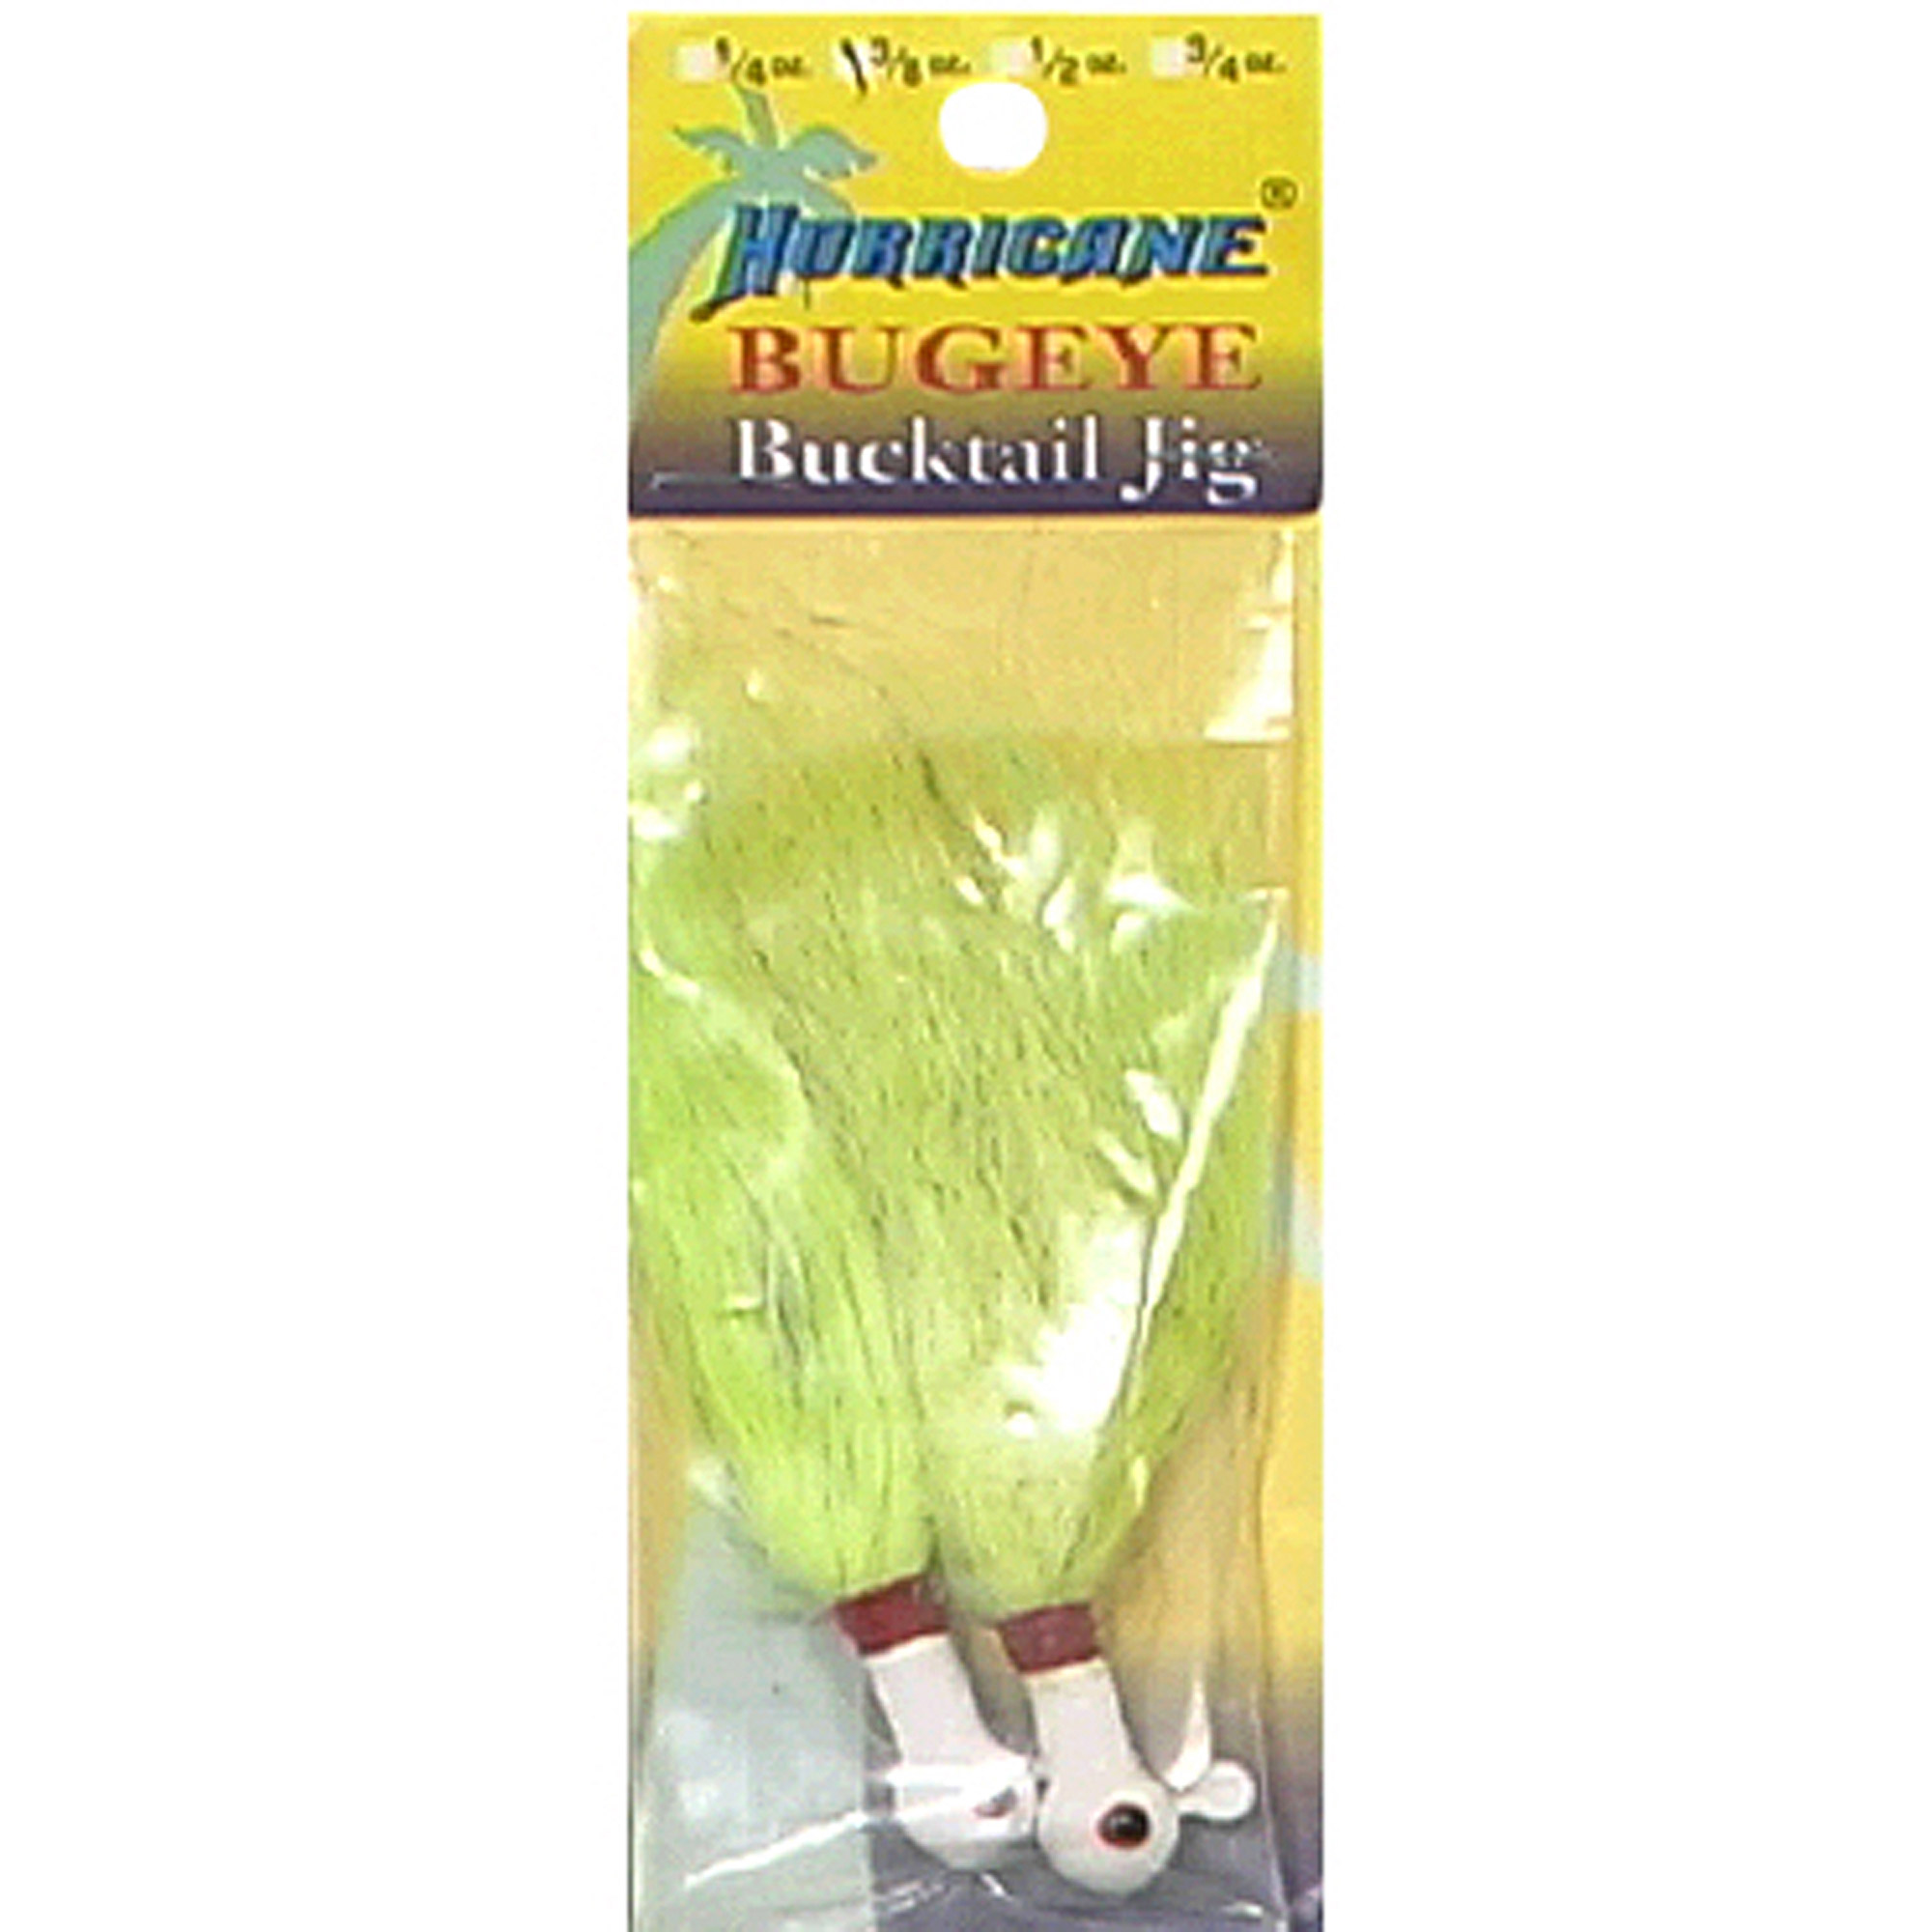 Hurricane H-BEB38-1 White 3 8 Ounce Bugeye Bucktail Jig Lure by Hurricane